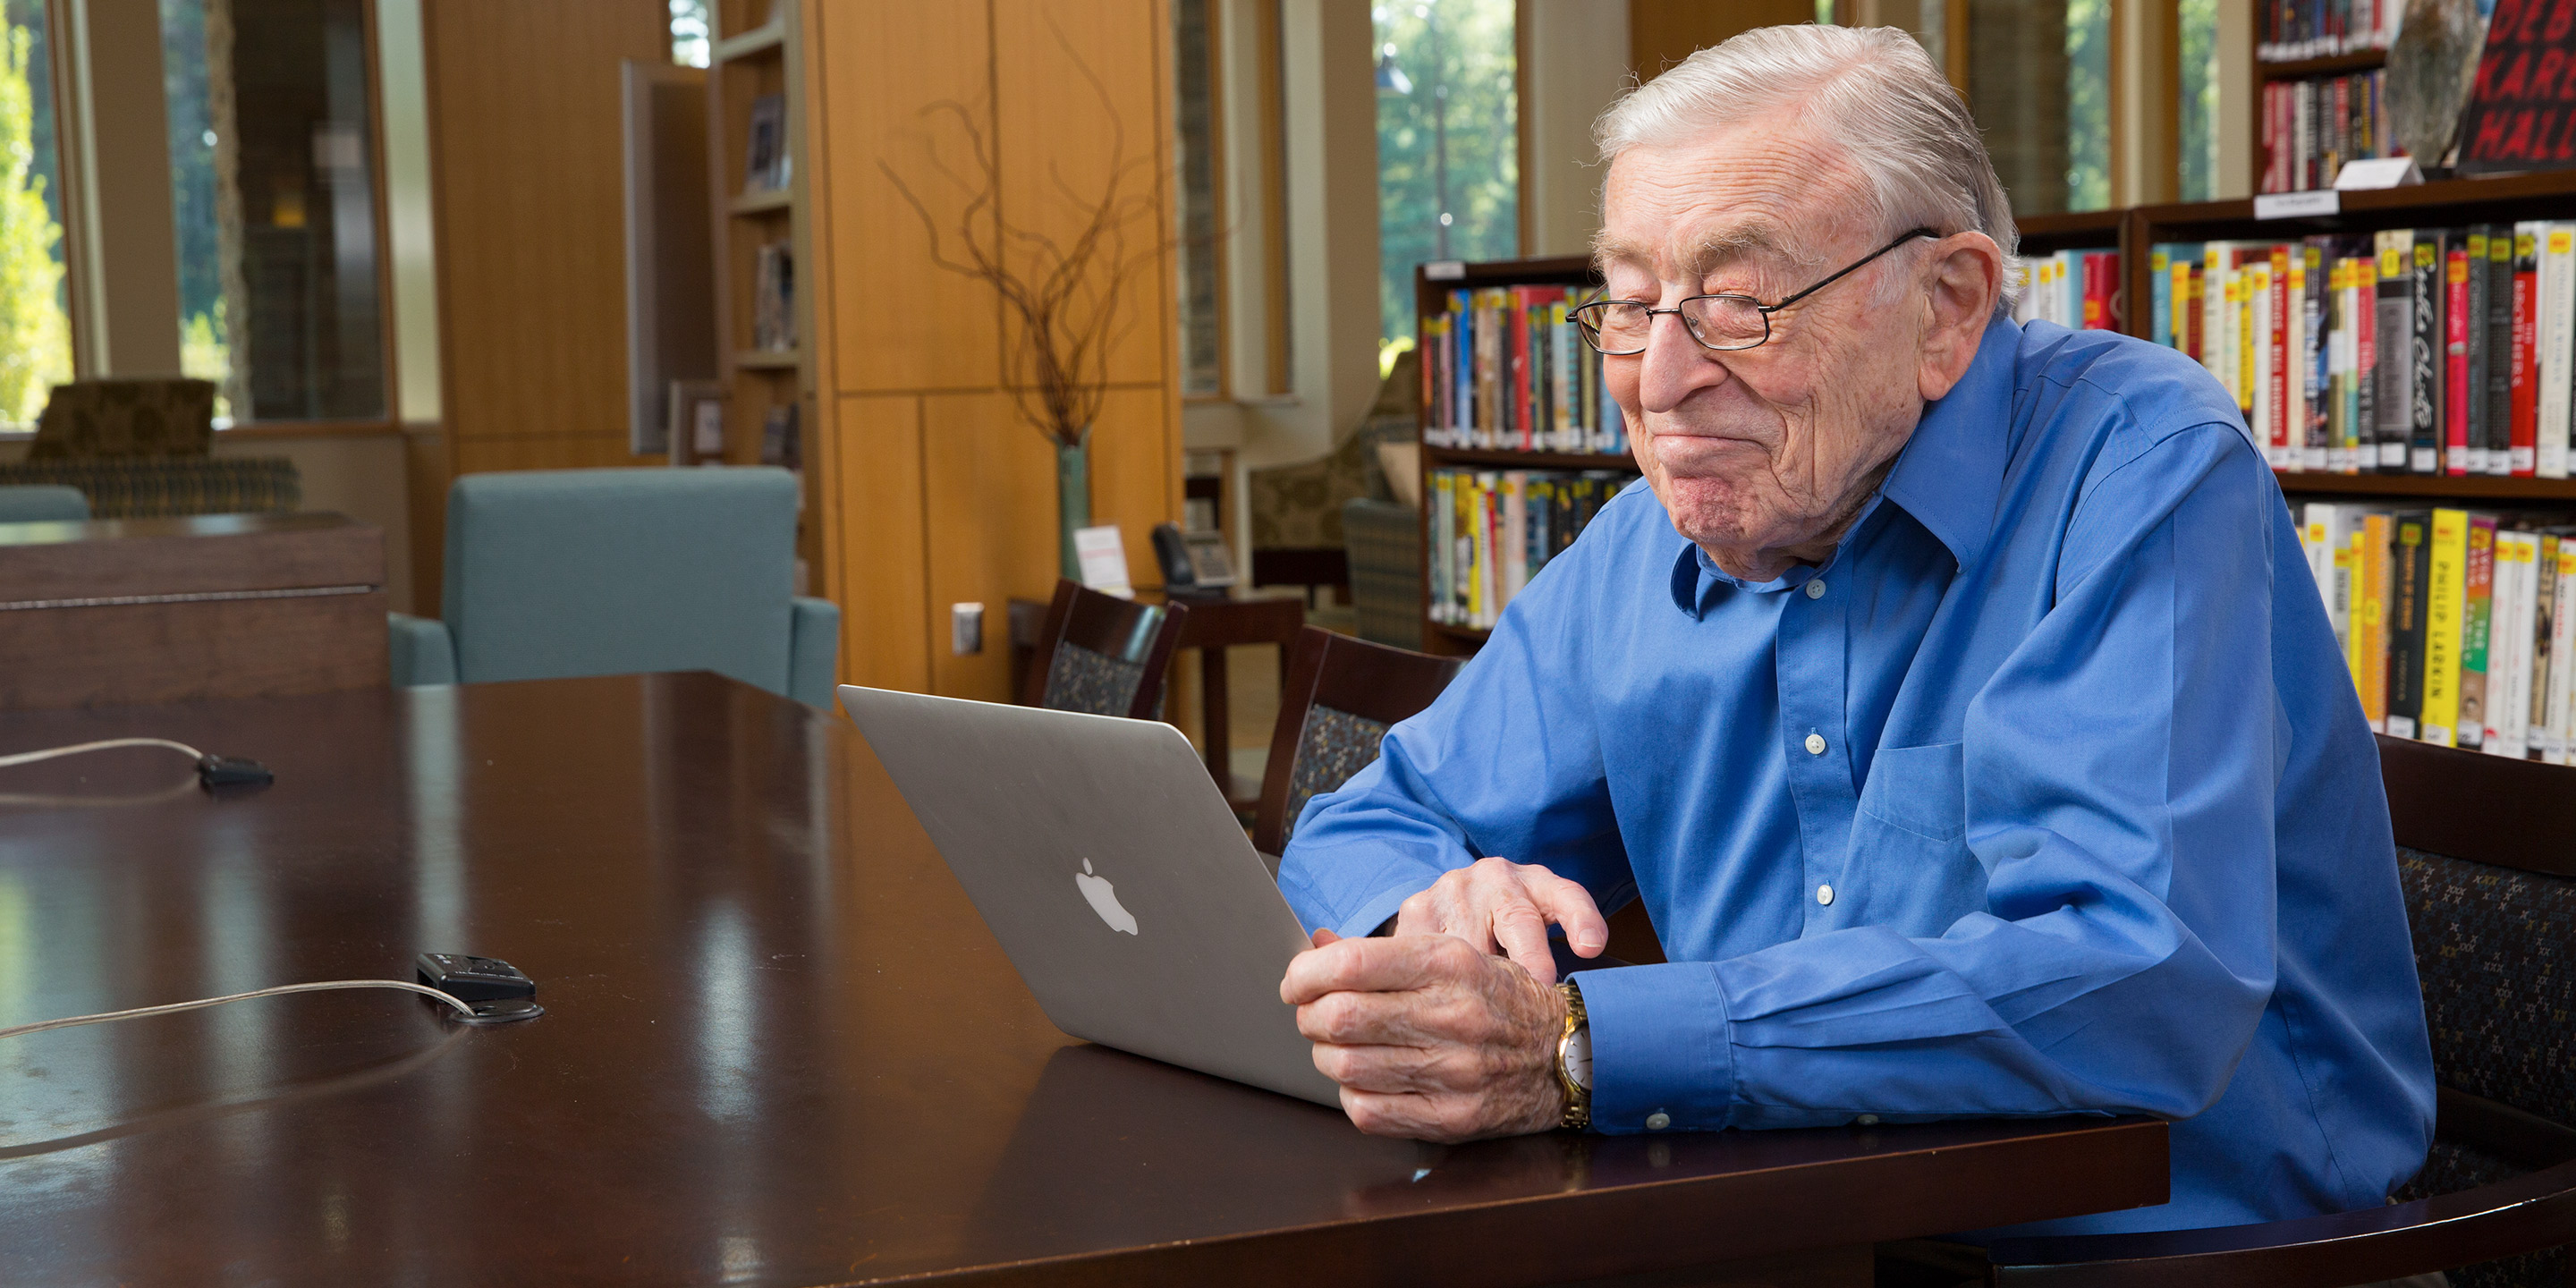 An elder male sits and smiles at a laptop while sitting in a library